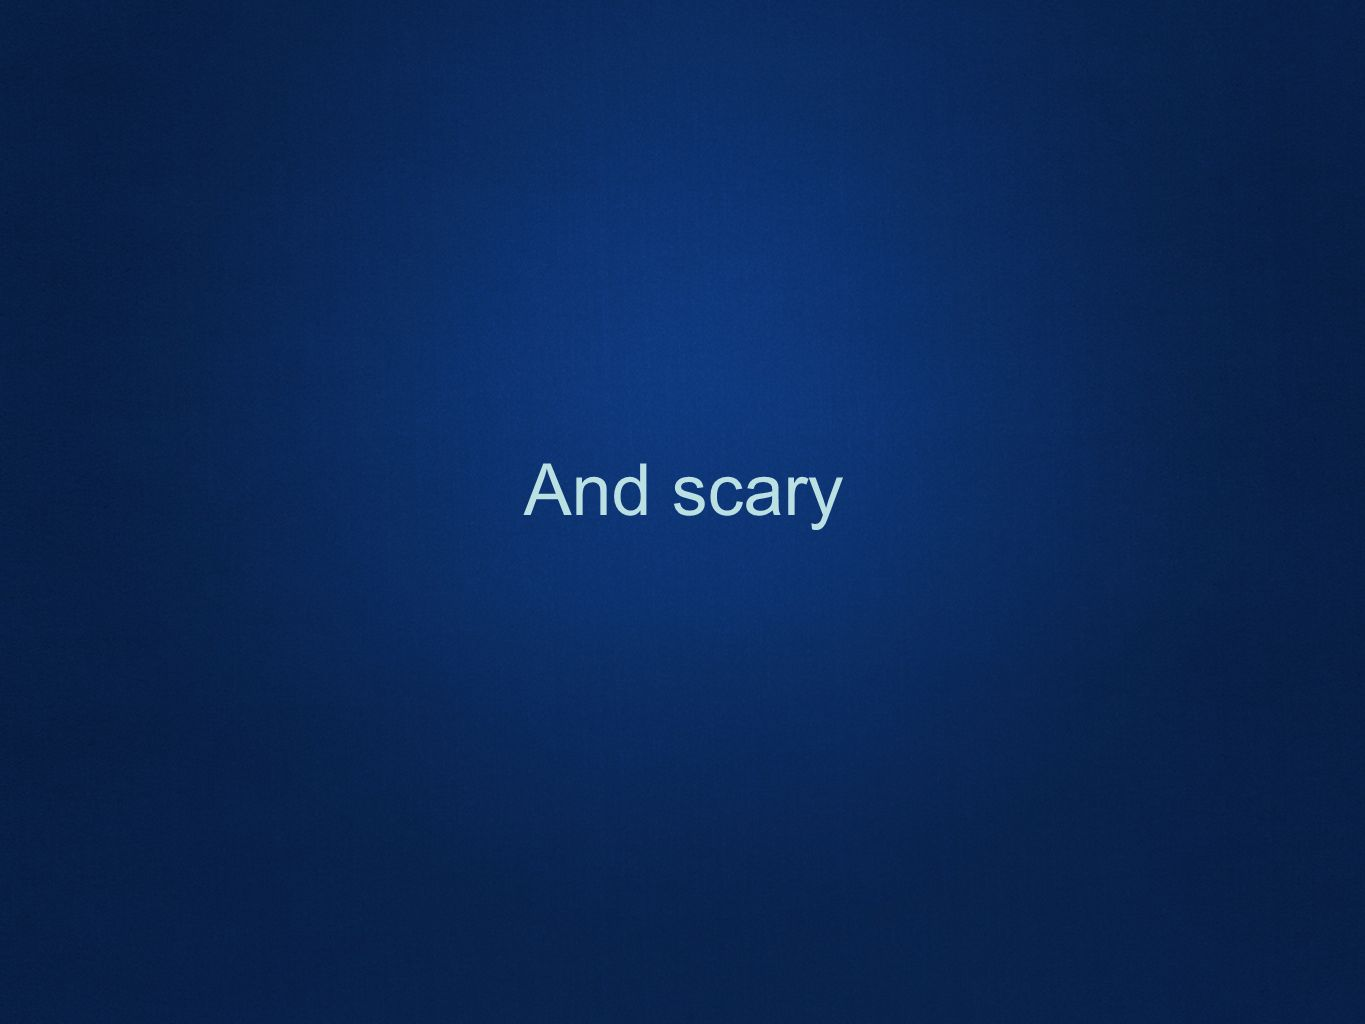 And scary